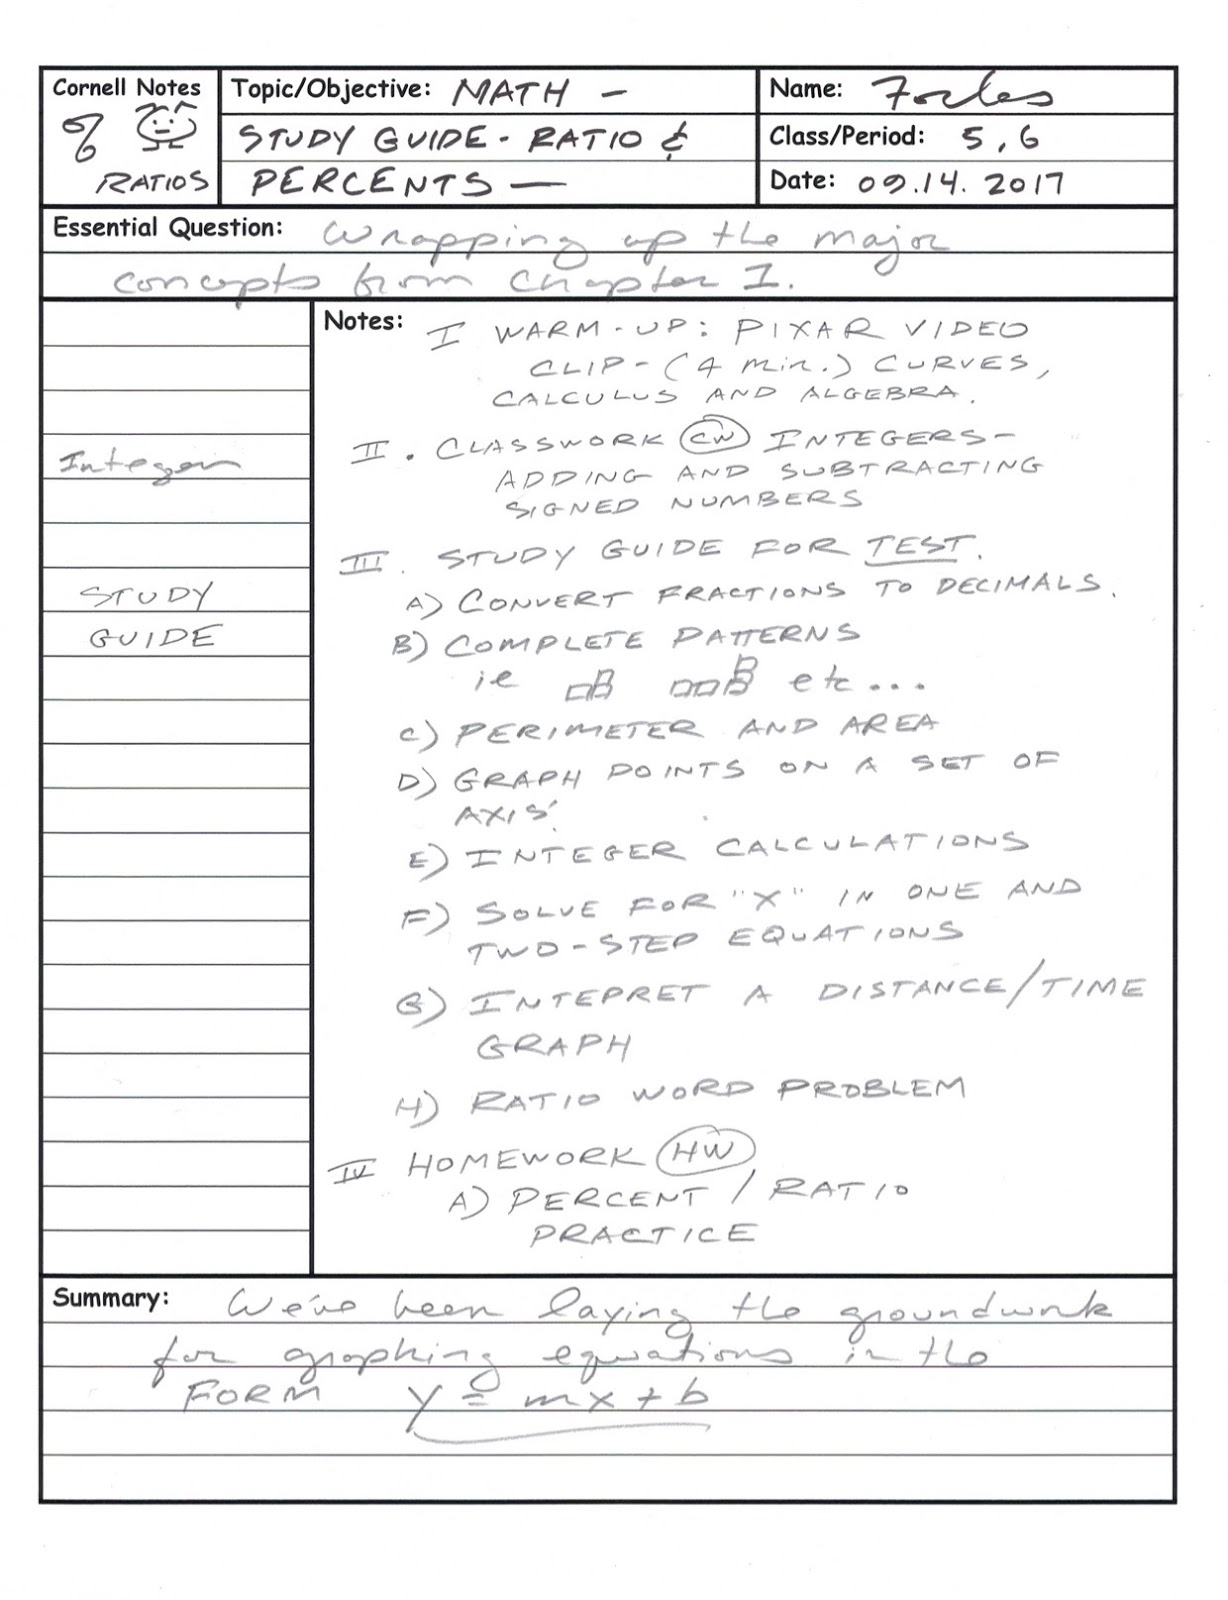 Cornell Notes Math Template subtracting fractions with whole ...